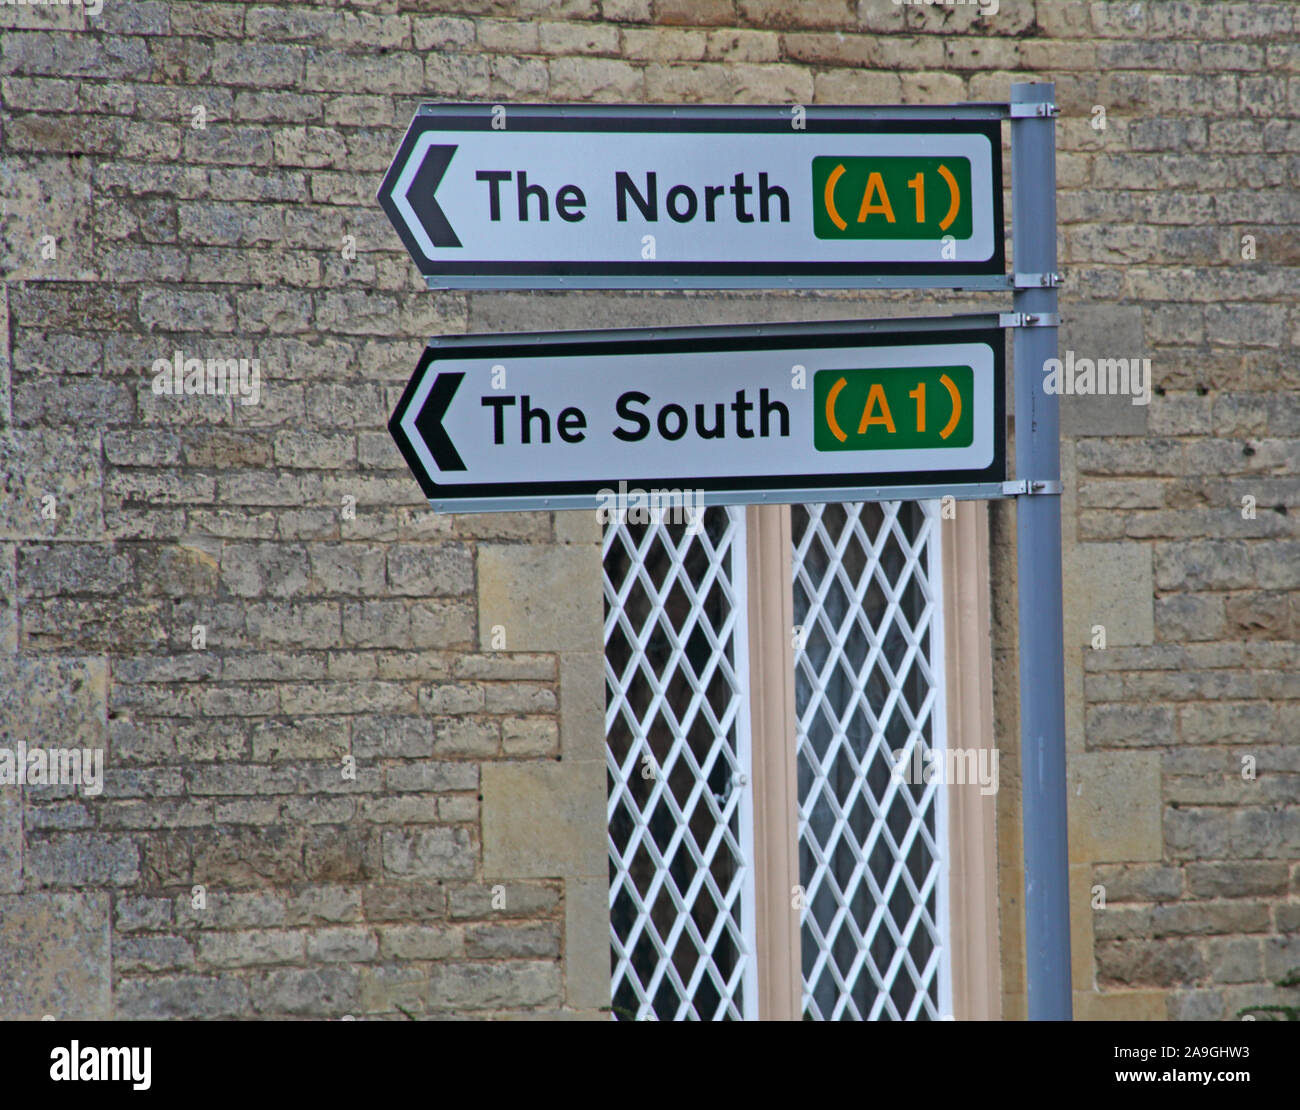 The North, The South signs, A1, which way now Stock Photo